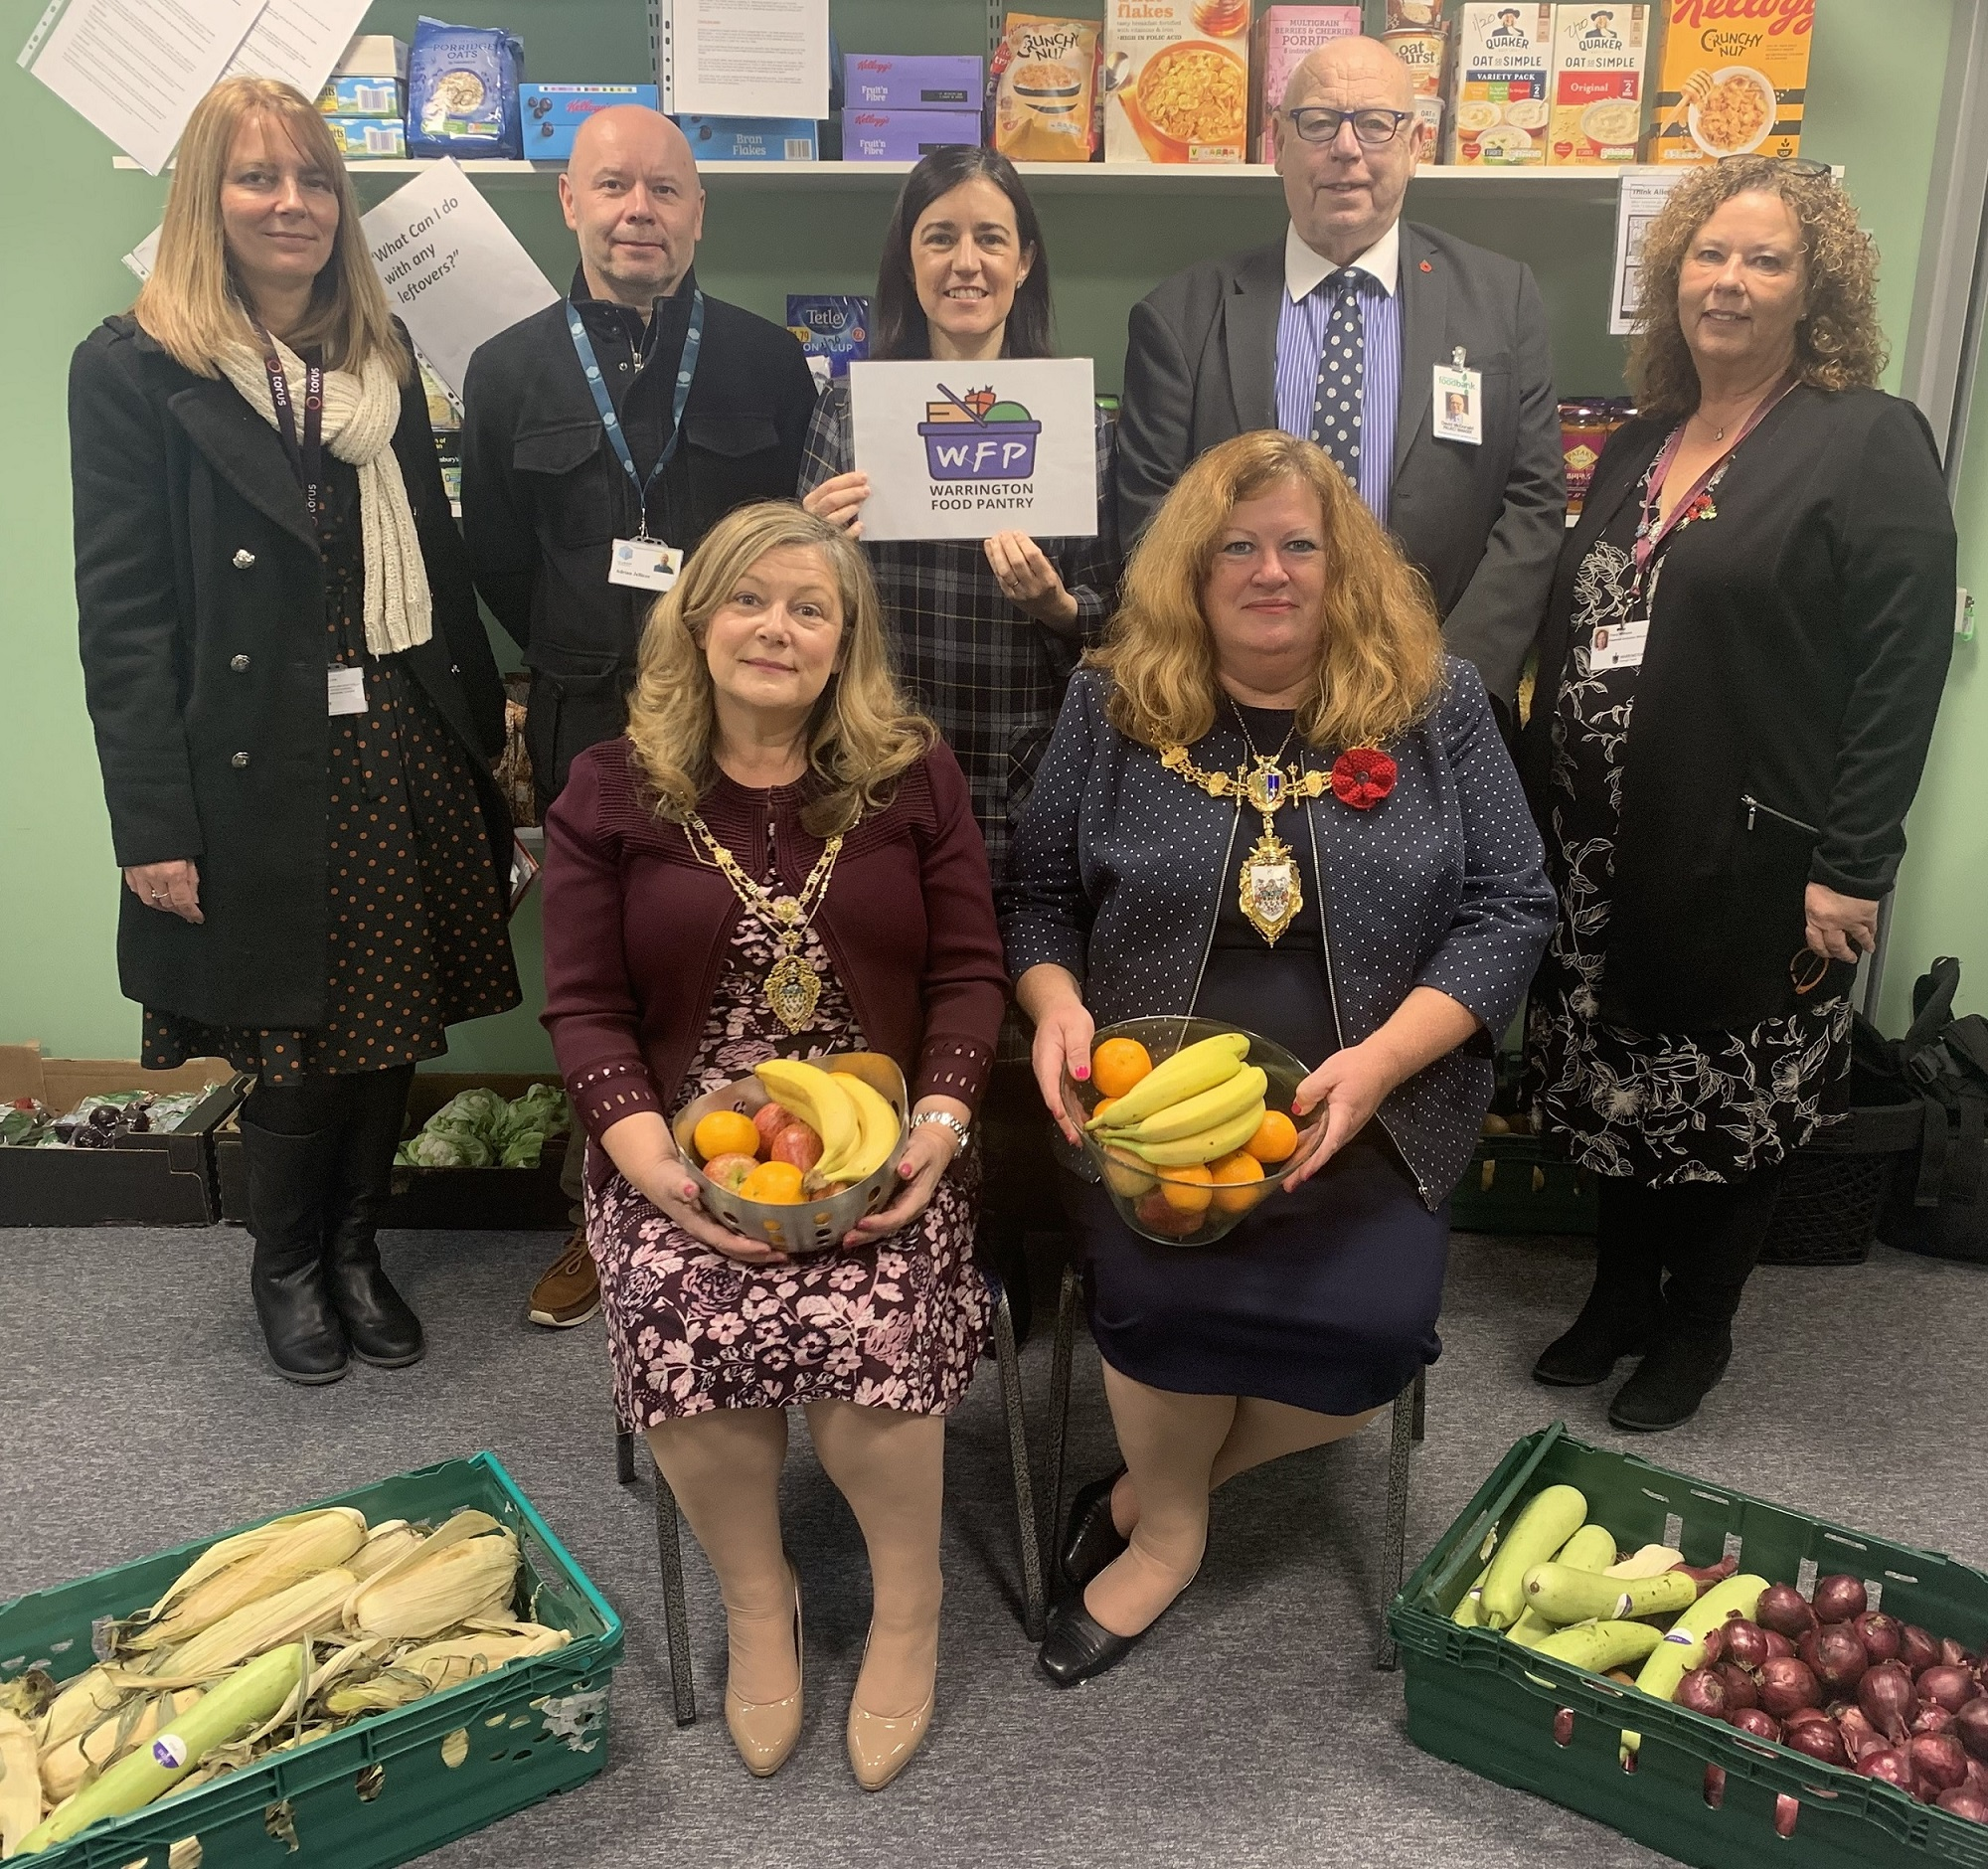 Council Launches Food Pantry For Residents Warringtongovuk